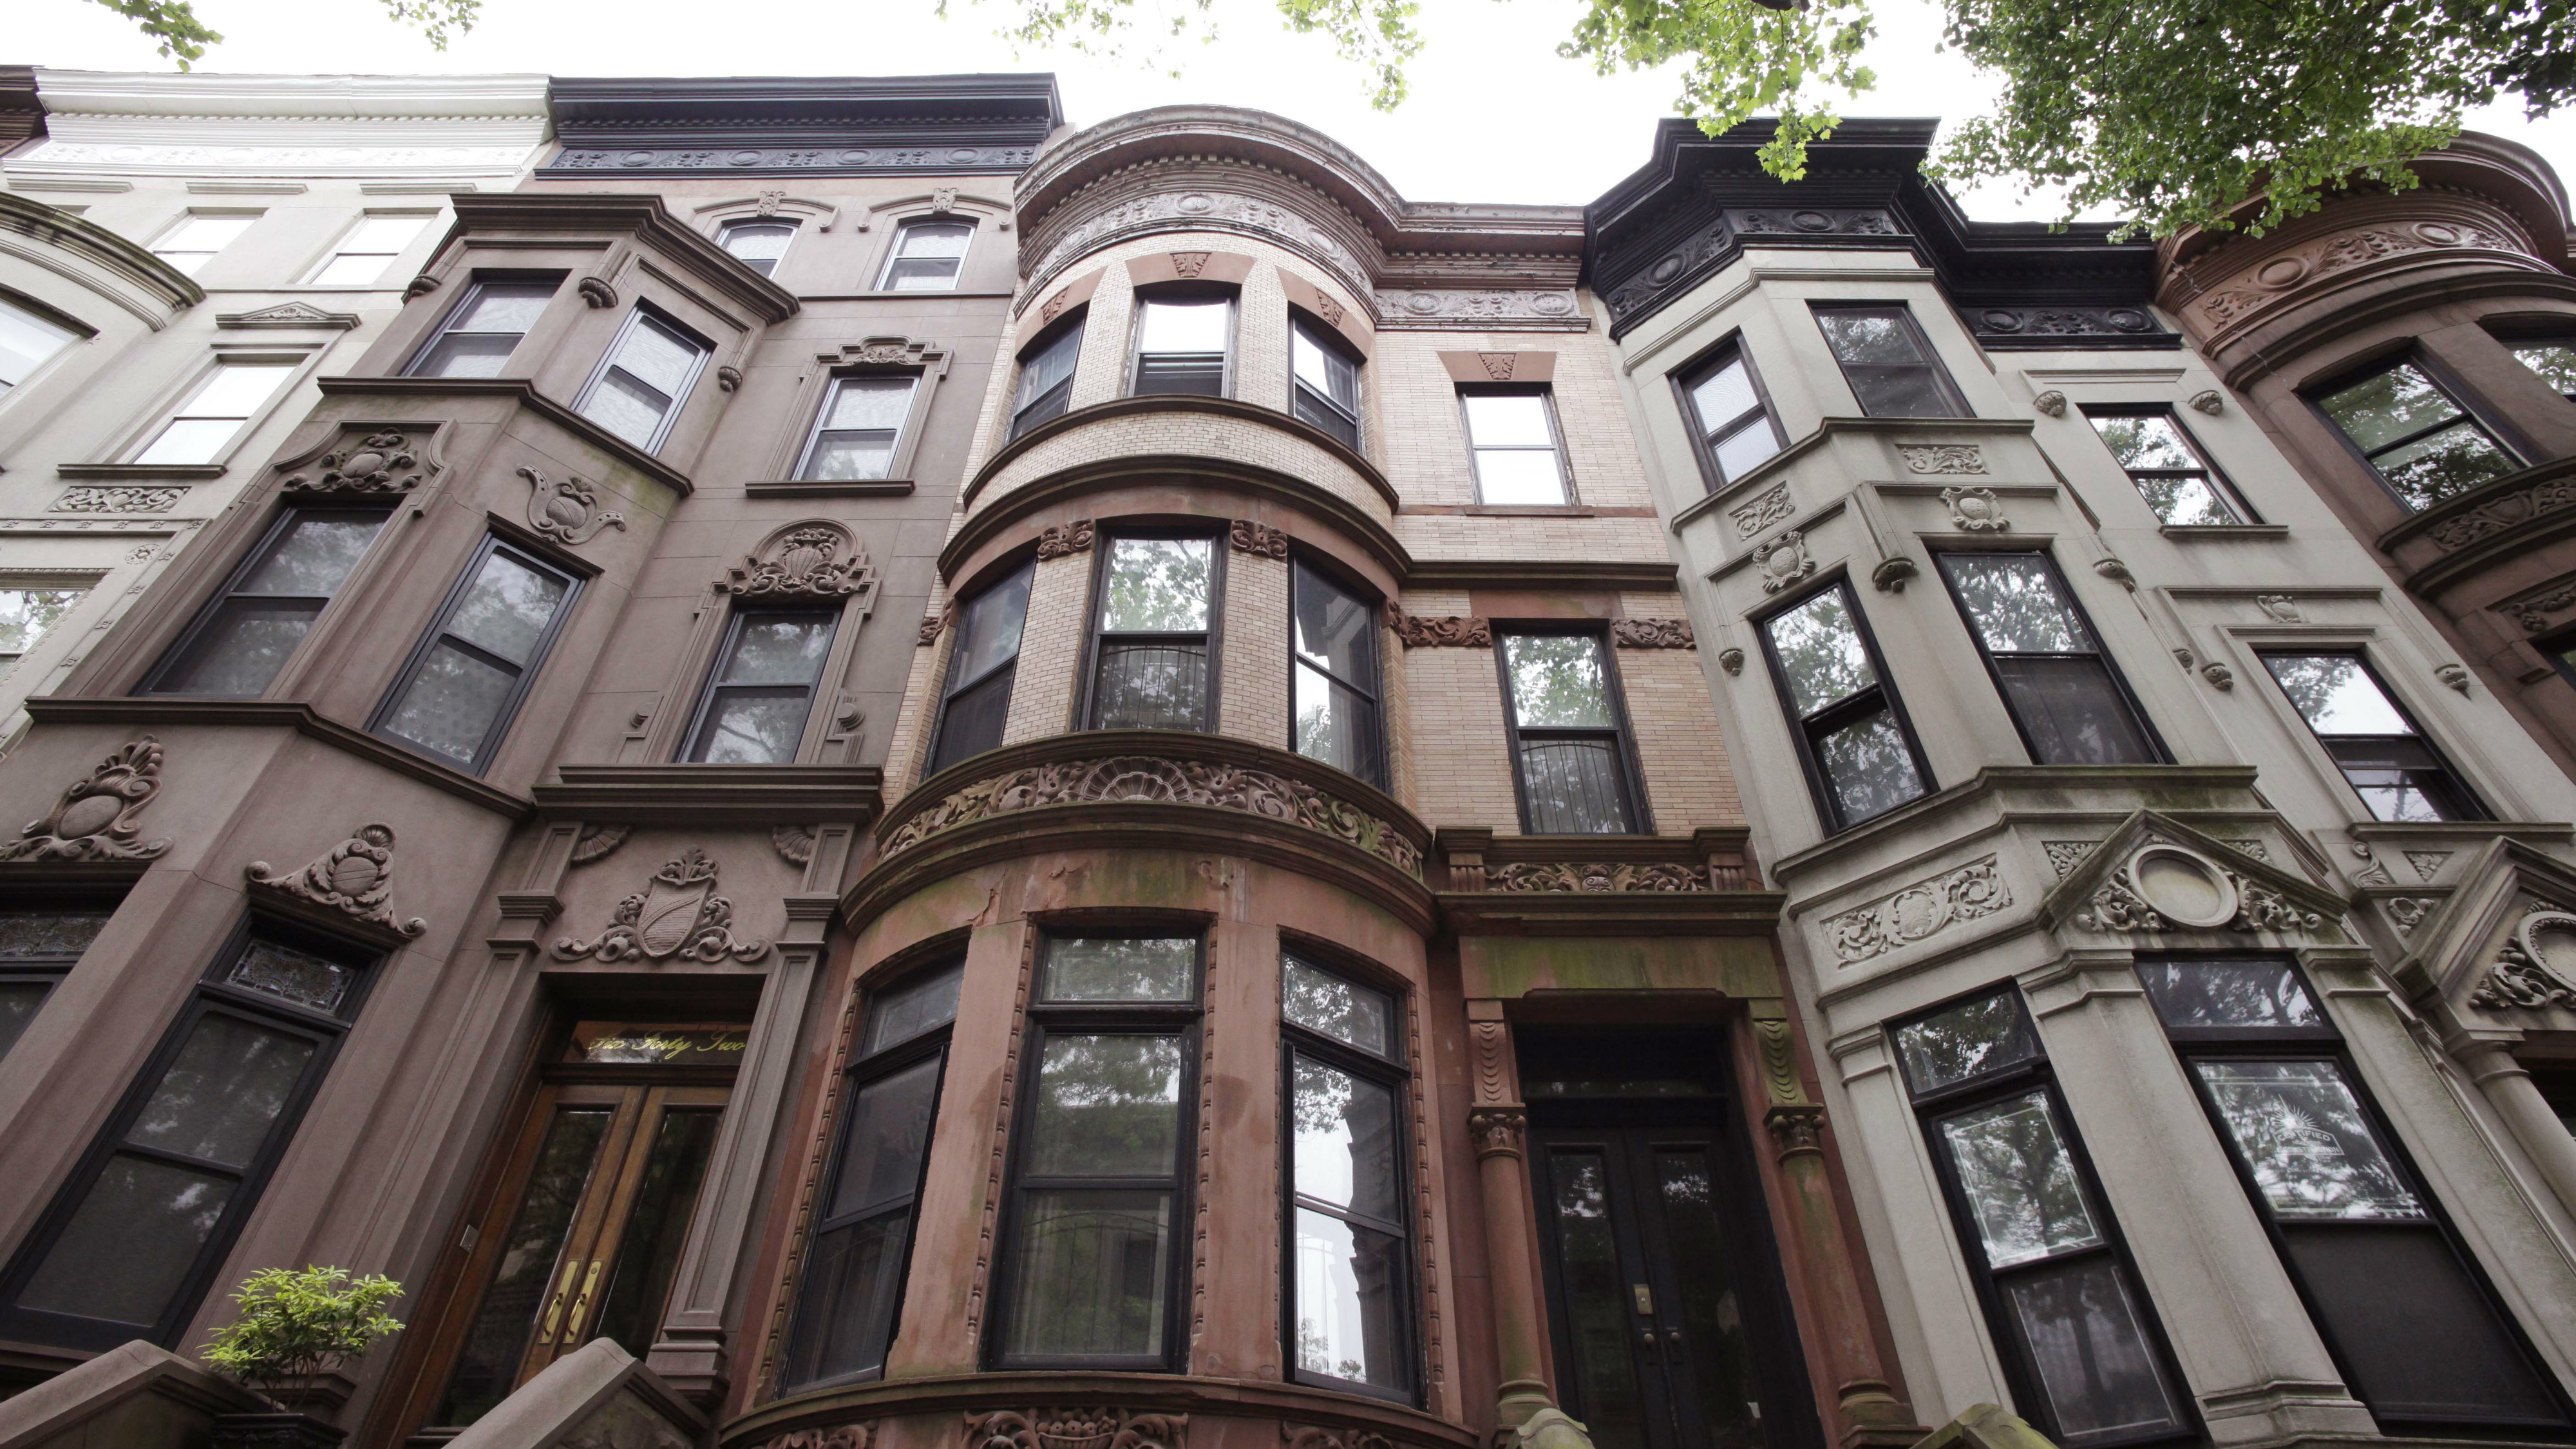 A brownstone in New York.